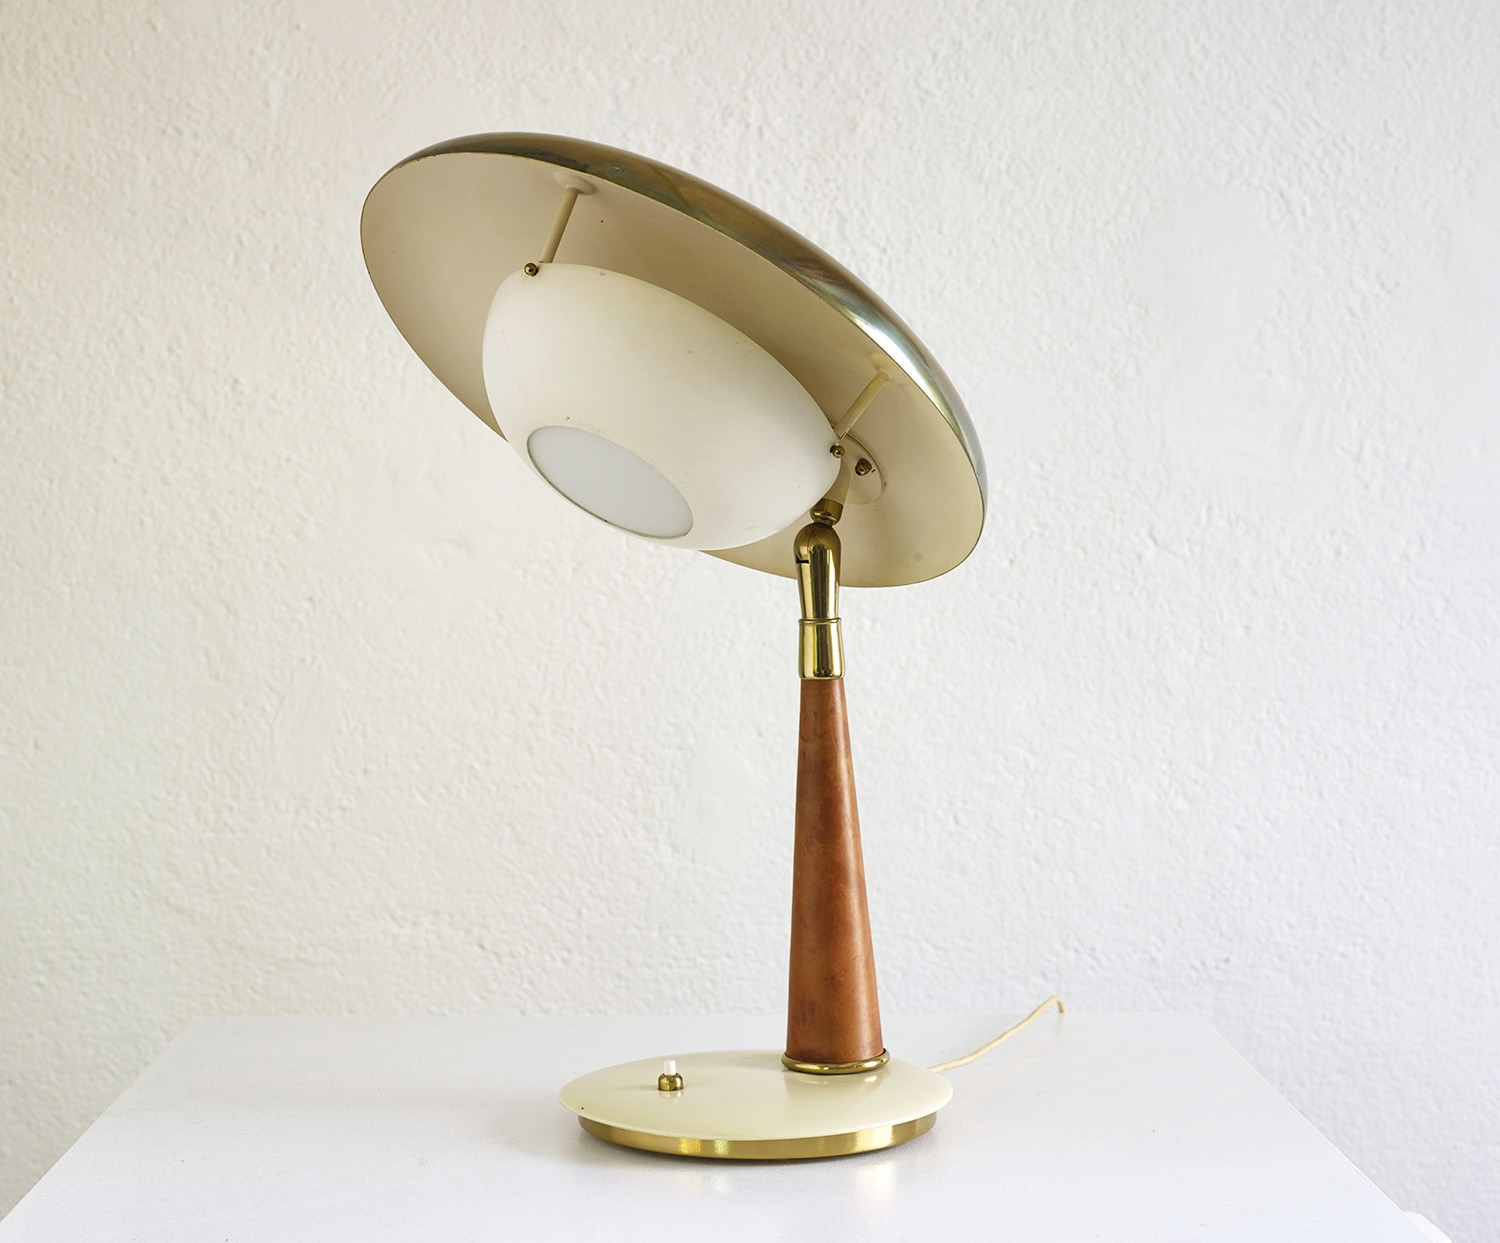 angelo-lelli-table-lamp-image-01